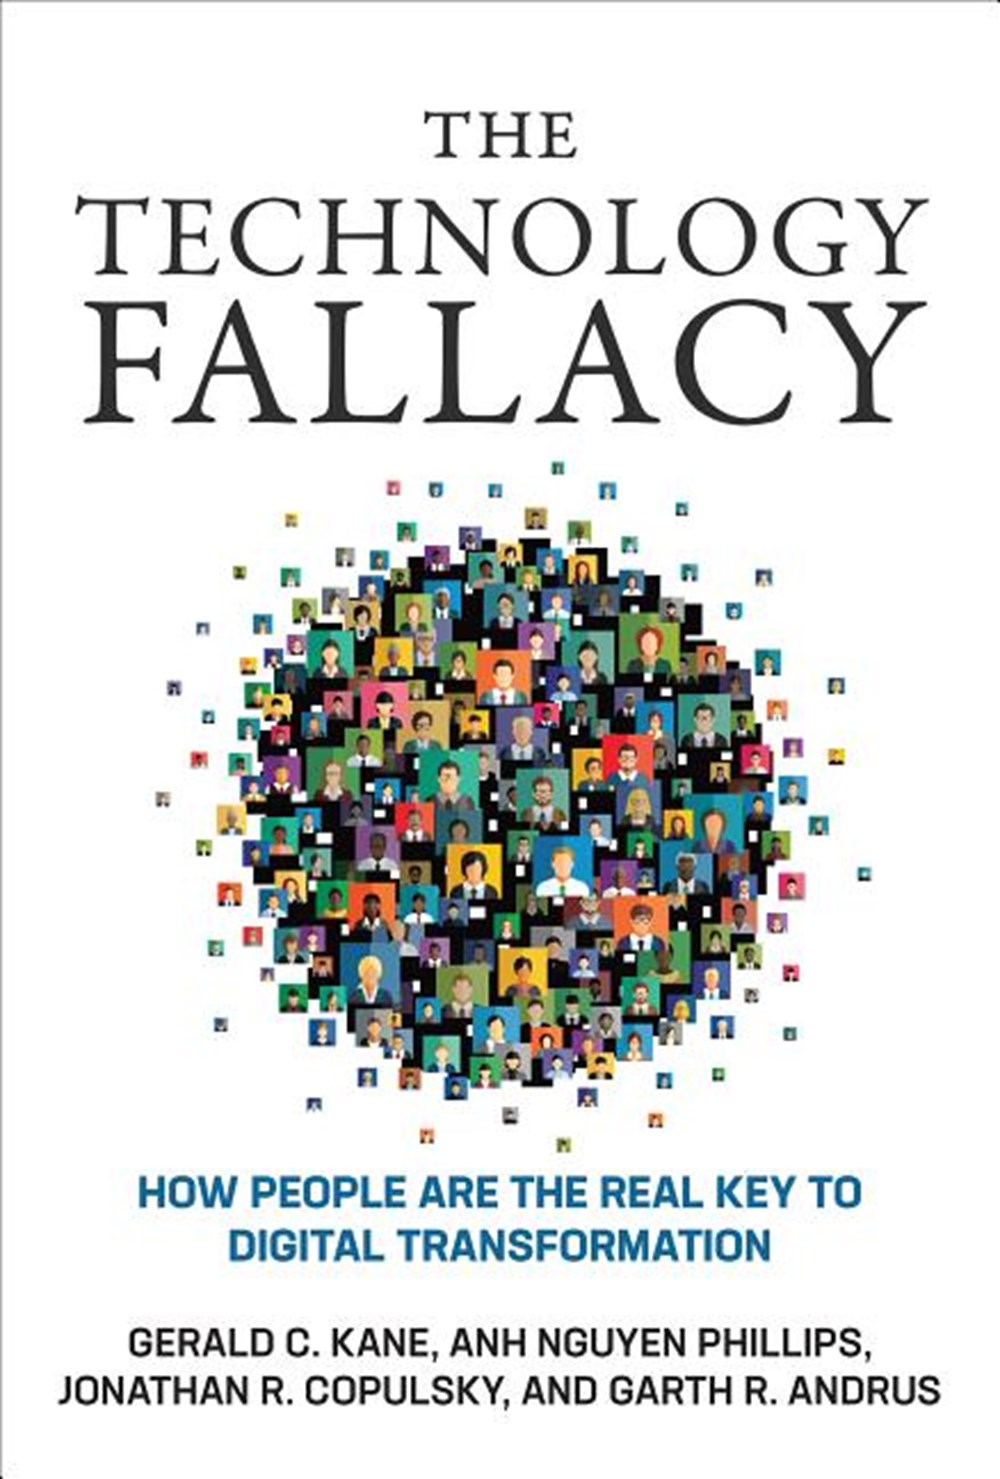 Technology Fallacy: How People Are the Real Key to Digital Transformation